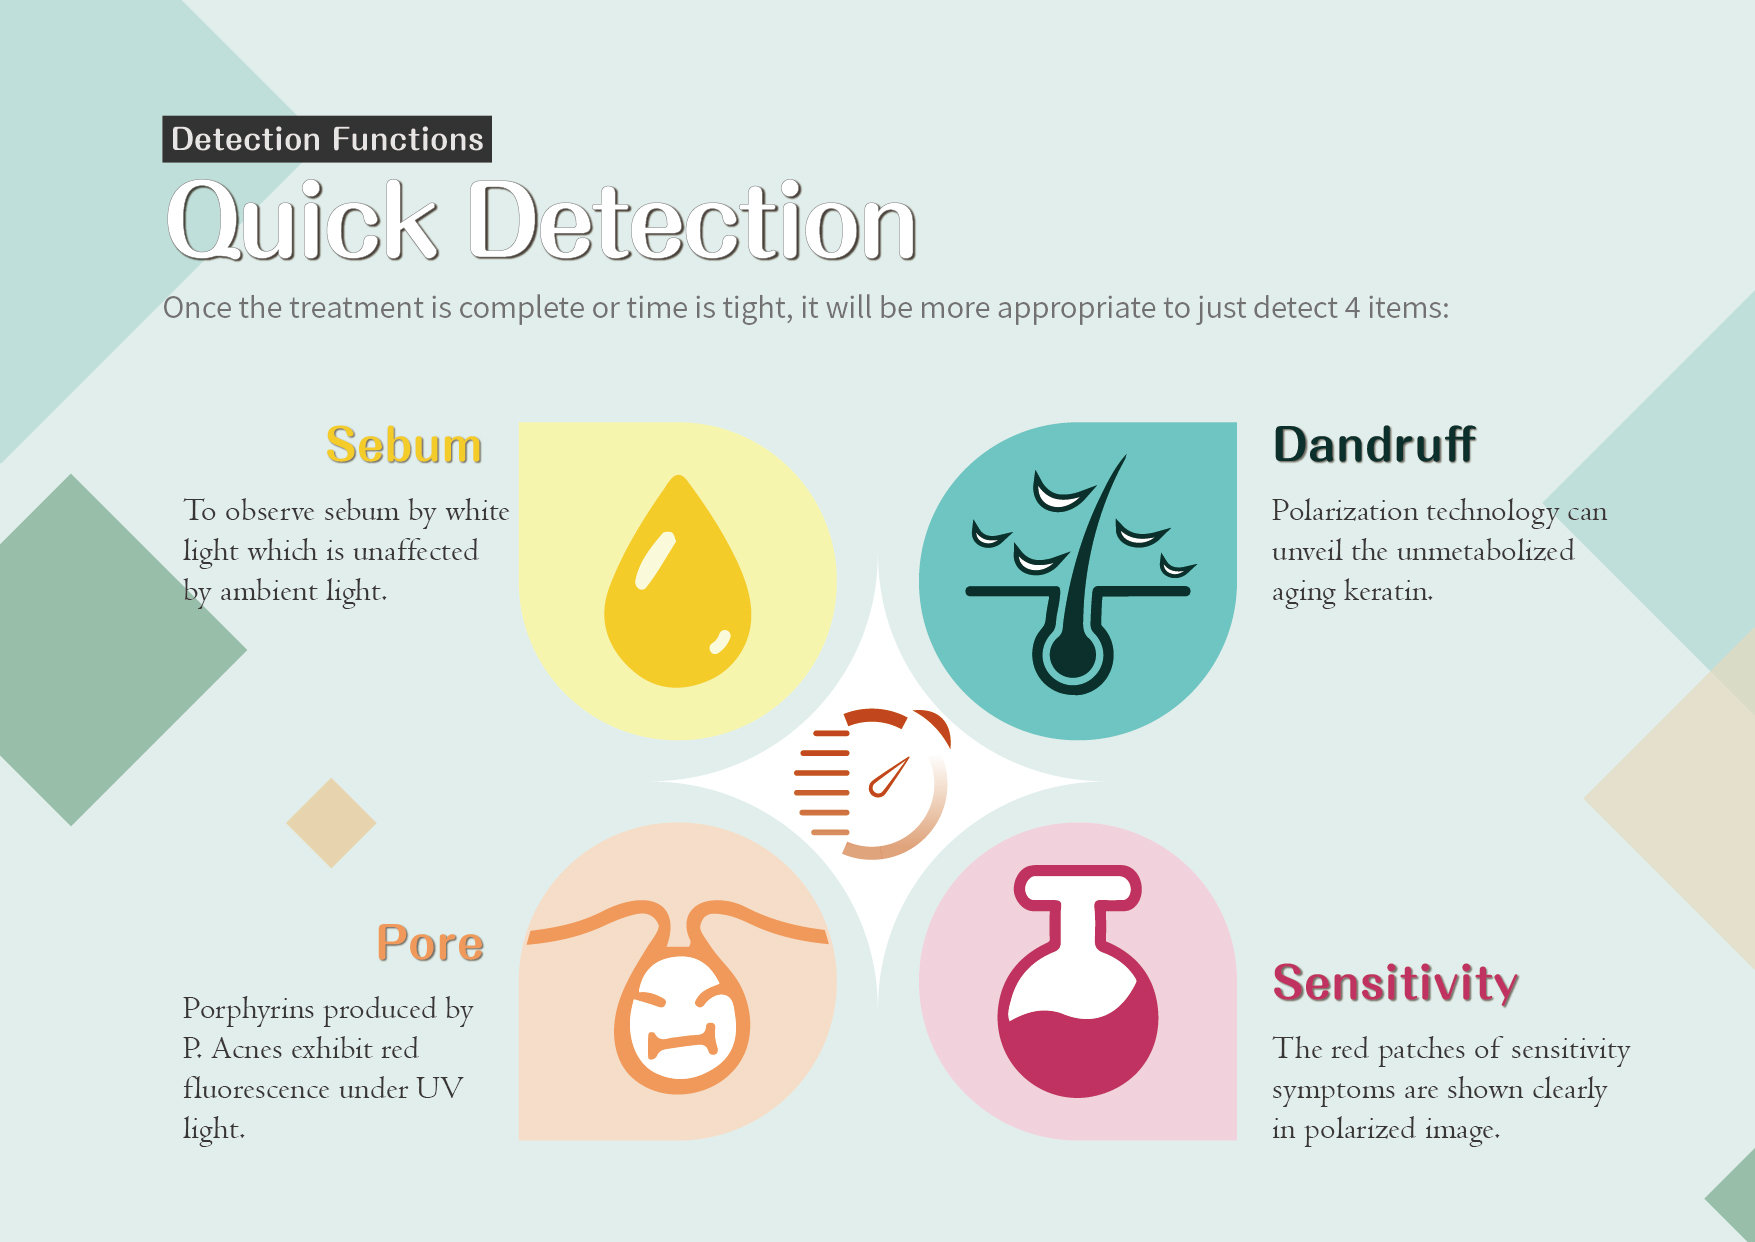 Quick Detection: Once the treatment is complete or time is tight, it will be more appropriate to just detect 4 items: